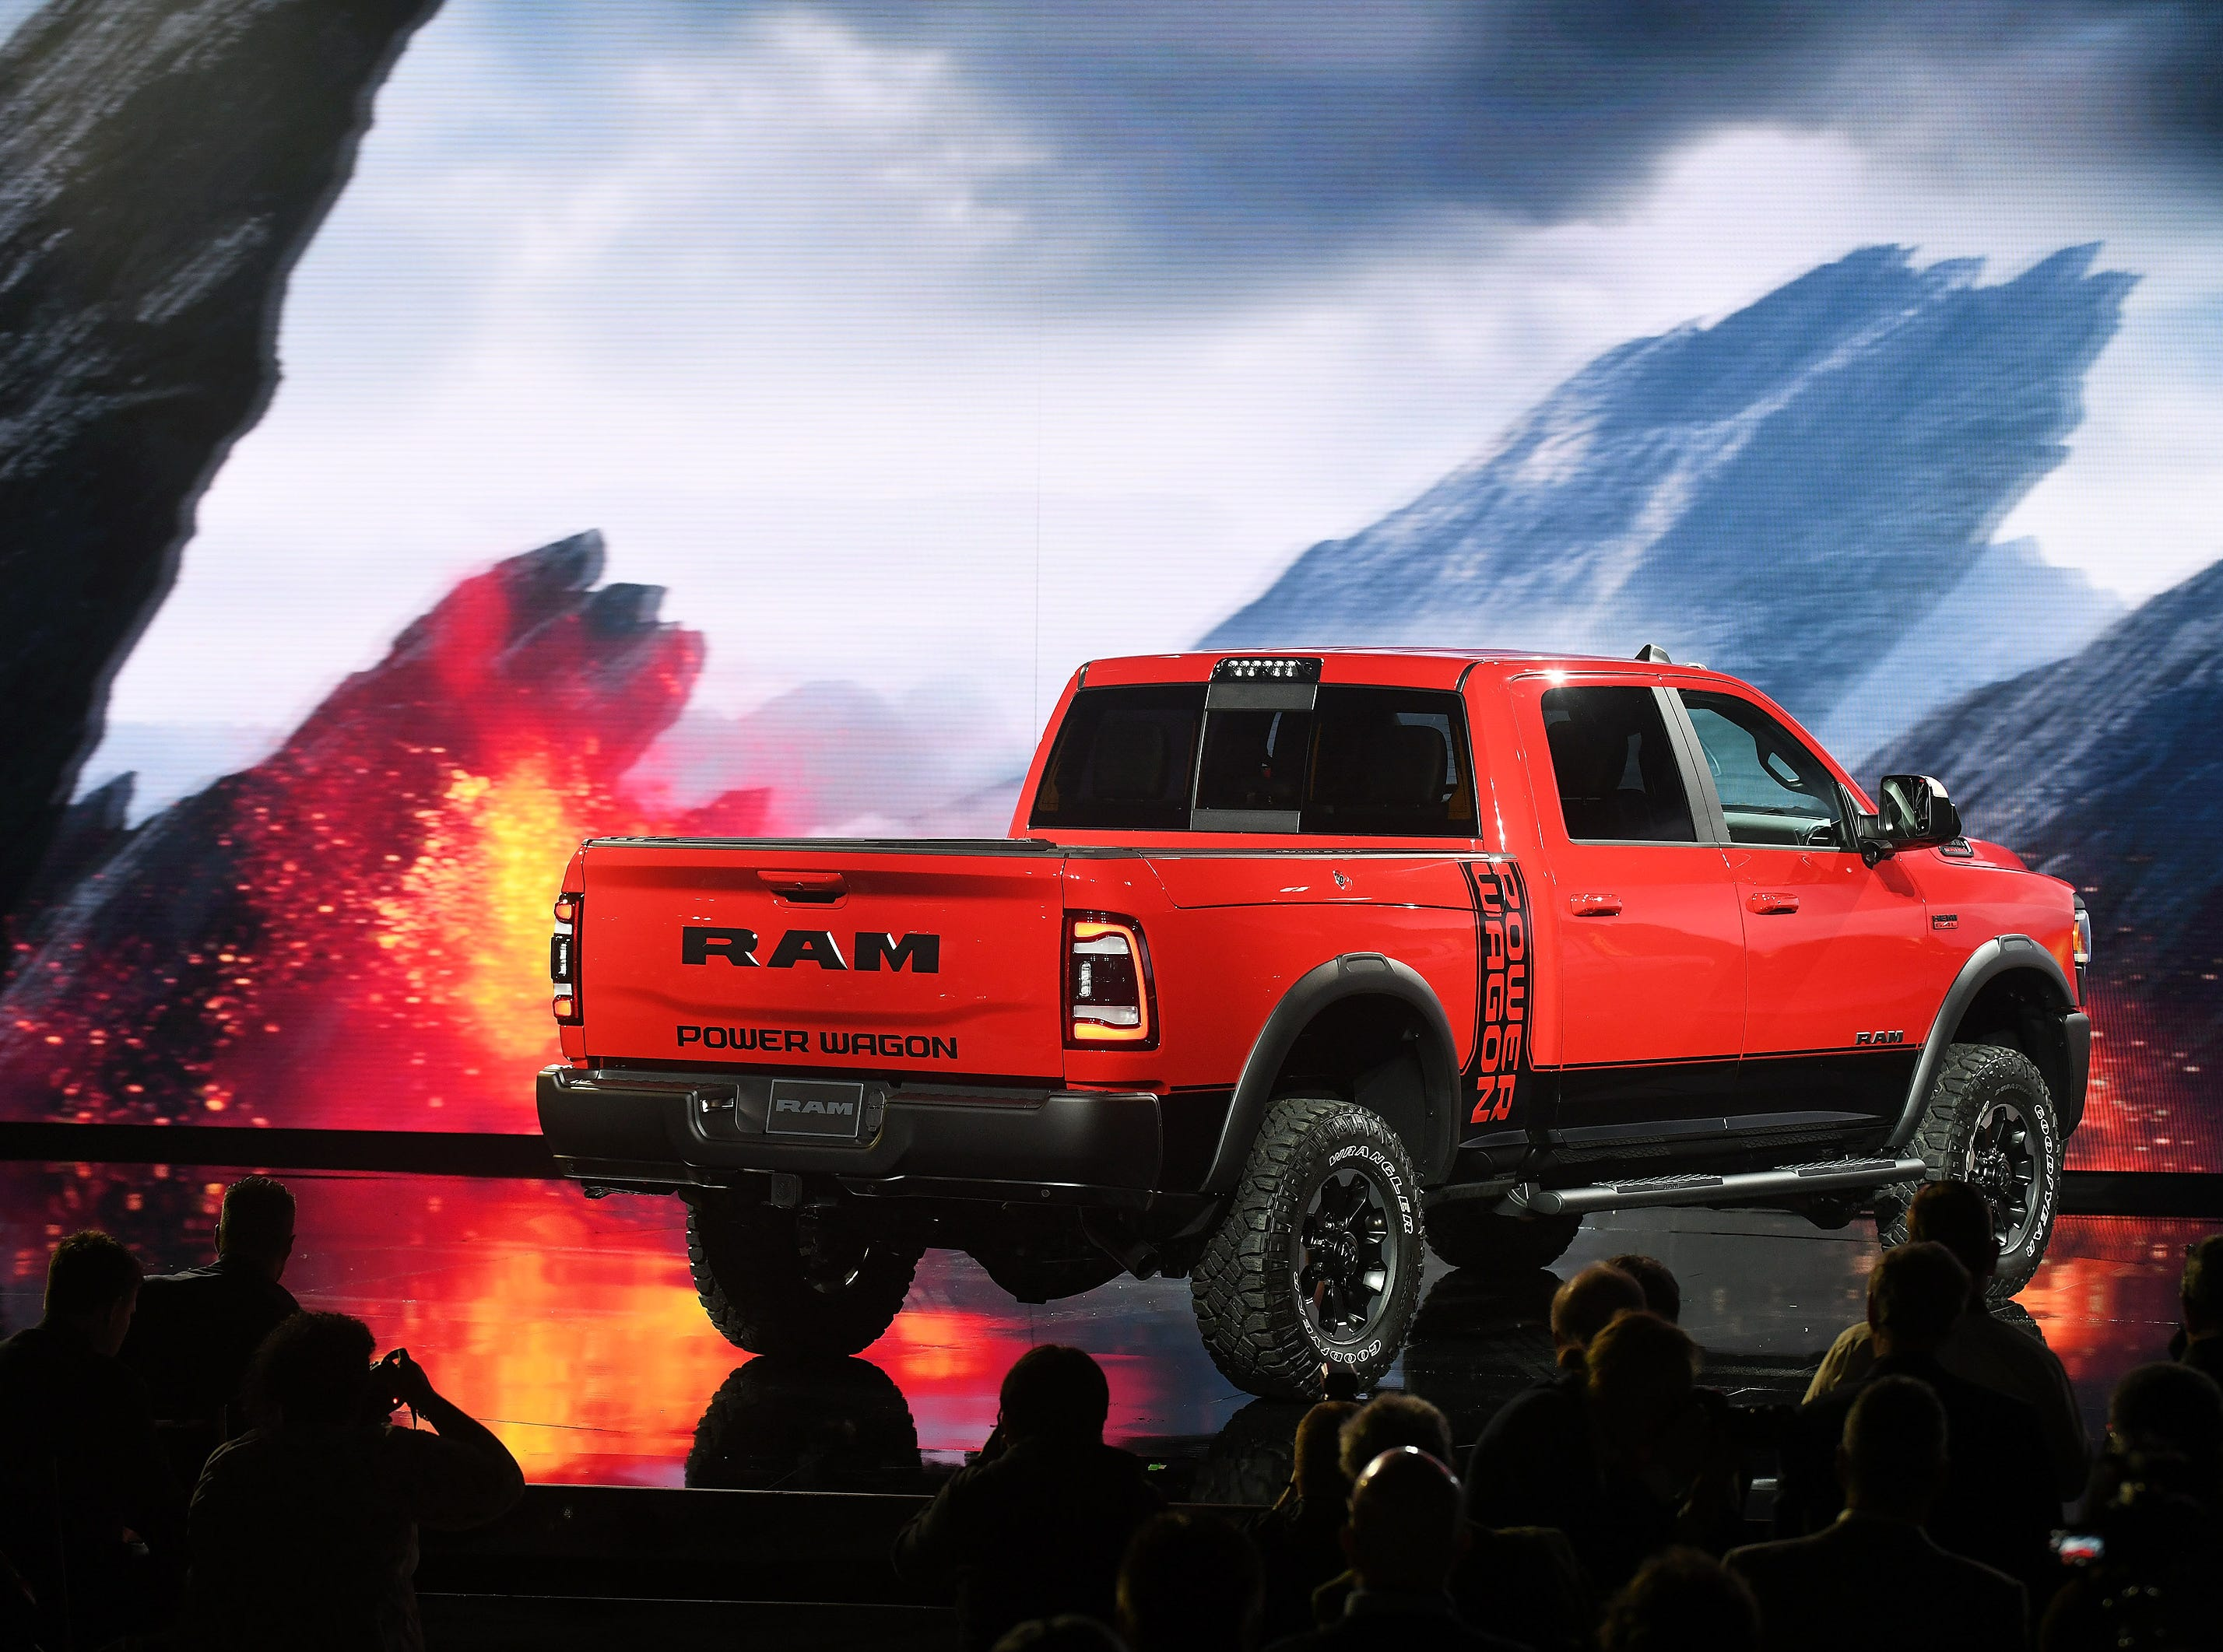 The 2019 Ram Power Wagon is displayed in front of a hot background on the stage at the Detroit Auto Show.